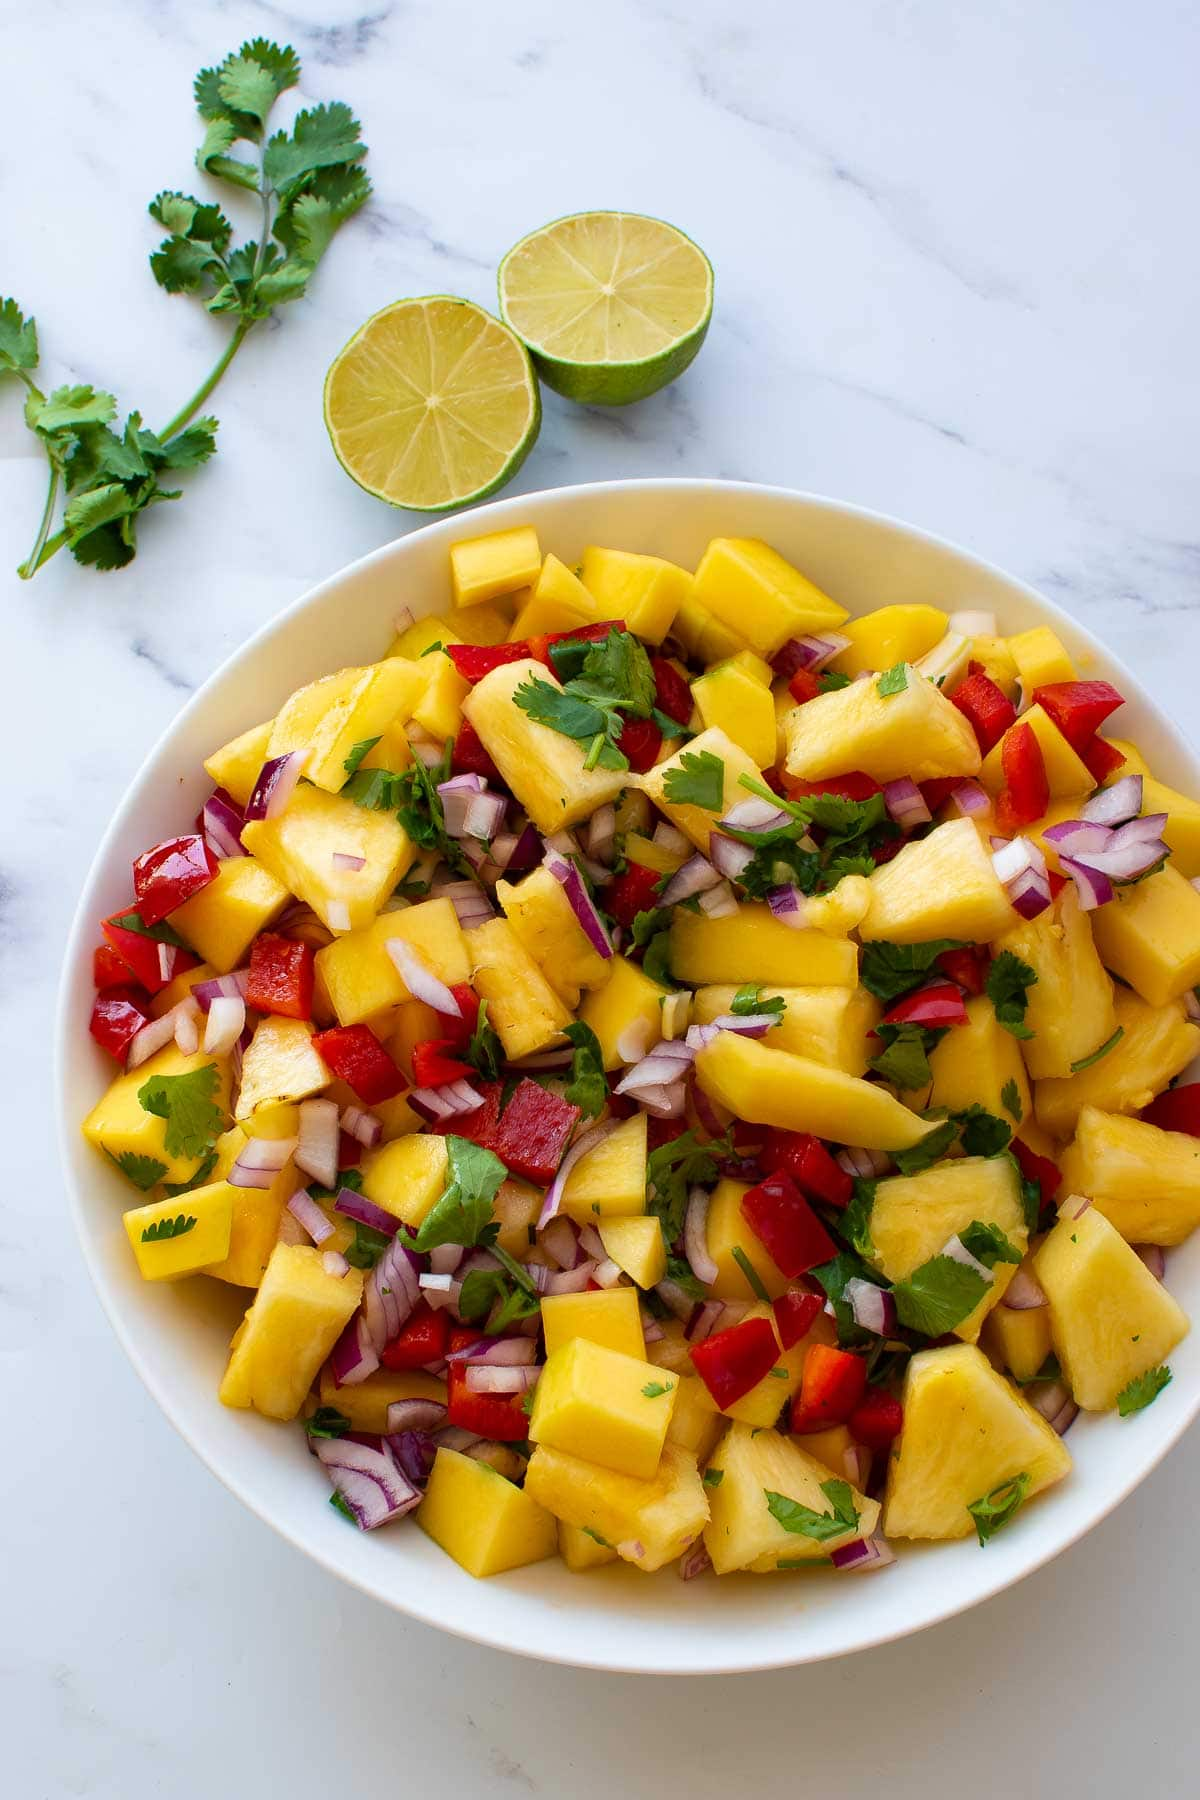 Salsa with cilantro, mango and pineapple.